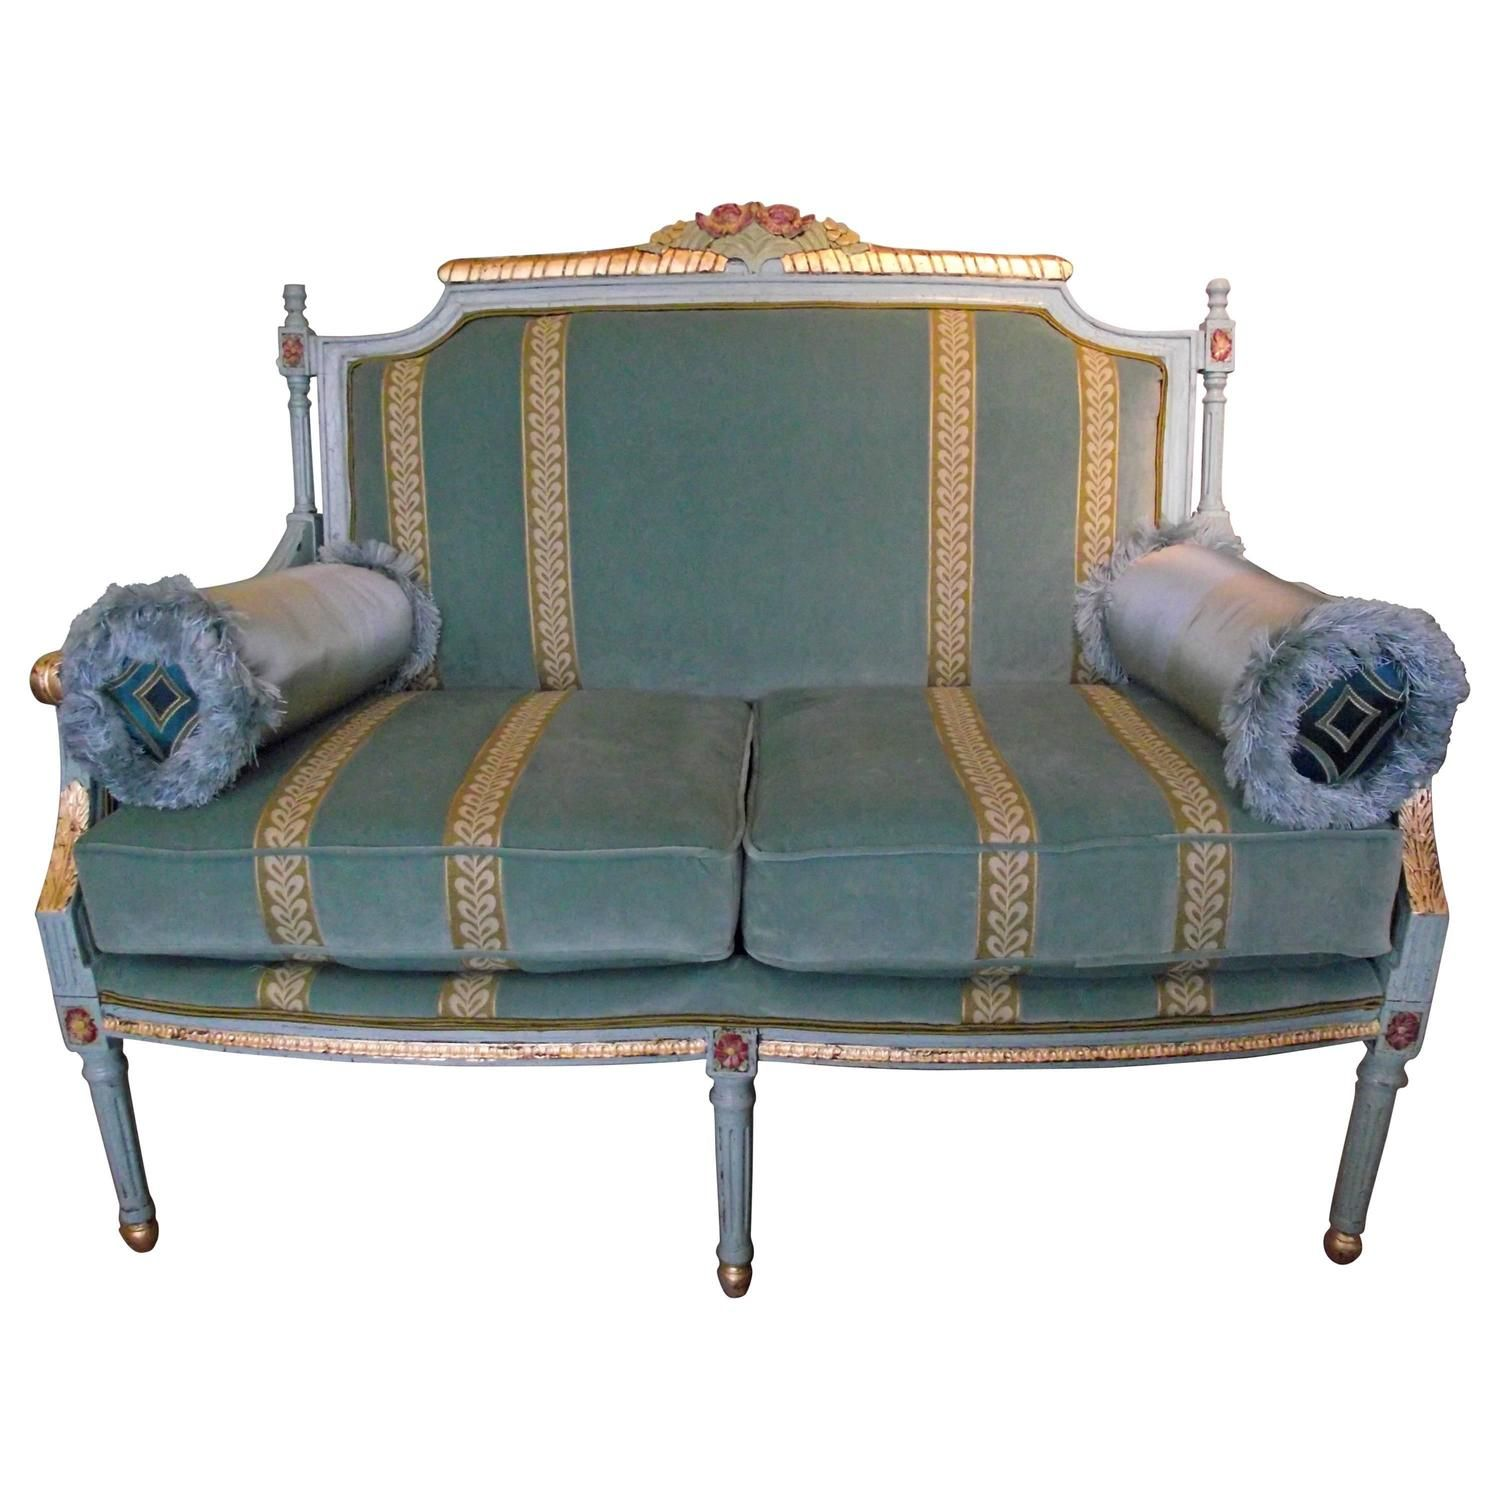 Strange Georgian Style Settee With Gold Leaf Accents In 2019 For Machost Co Dining Chair Design Ideas Machostcouk